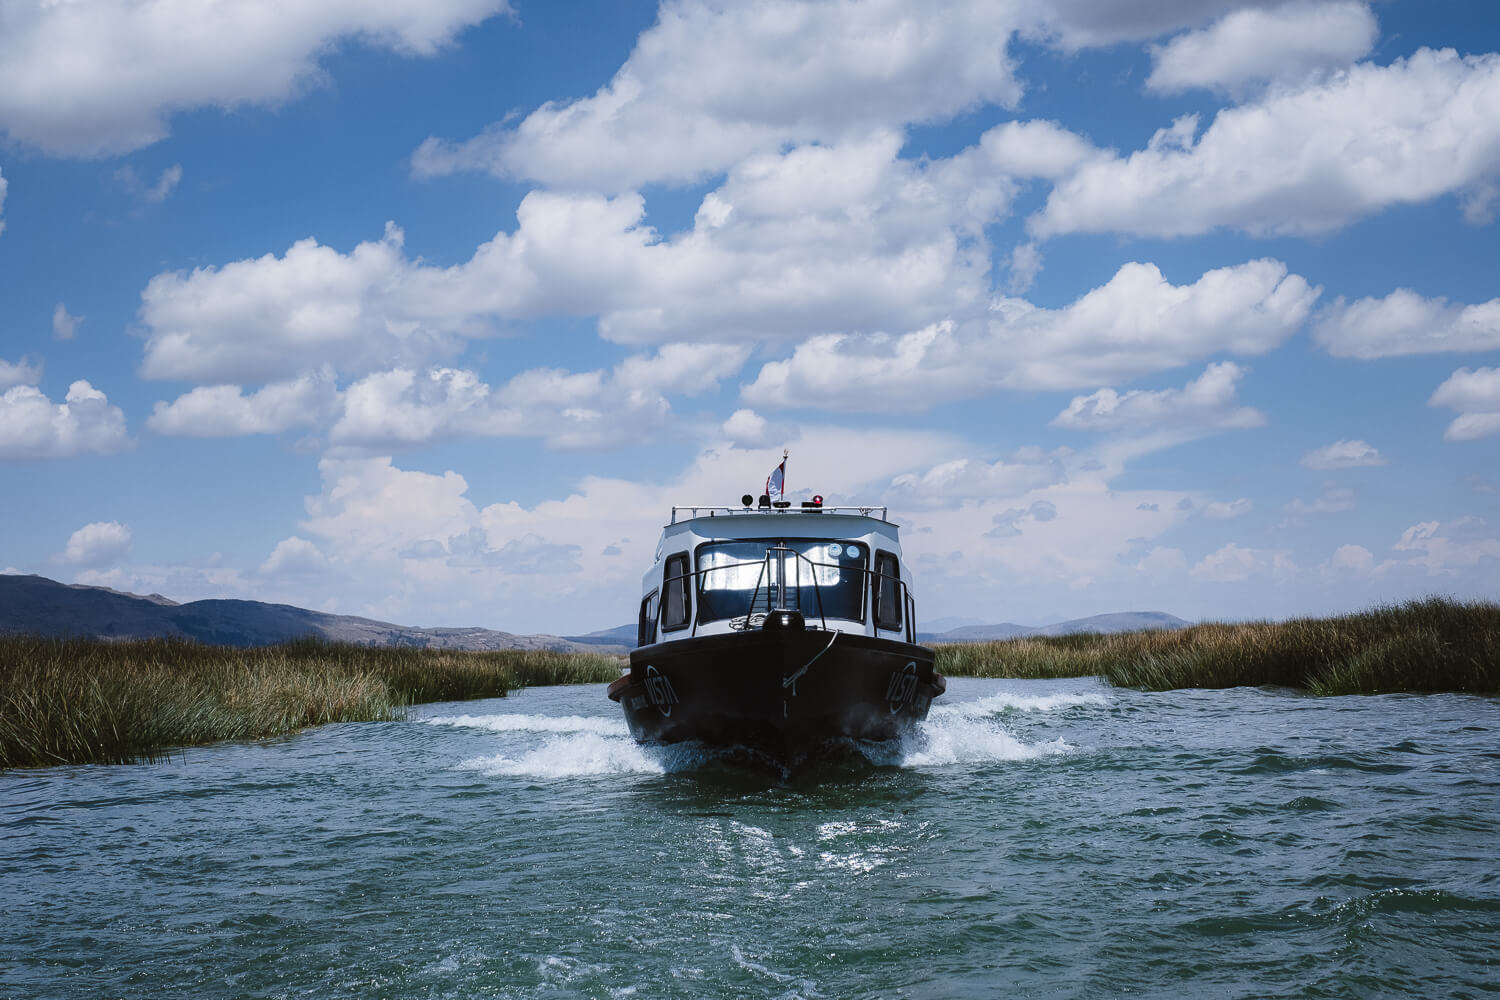 """High-speed boats headed to the islands. Travel photography and guide by © Natasha Lequepeys for """"And Then I Met Yoko"""". #peru #laketiticaca #amantani #taquile #homestay #culturalexperience #photoblog #travelblog #travelphotography #fujifilm #travel #travelperu #southamerica #allwaystravel #laketiticacaitinerary #puno #uros #floatingislands #pachamama #pachatata"""